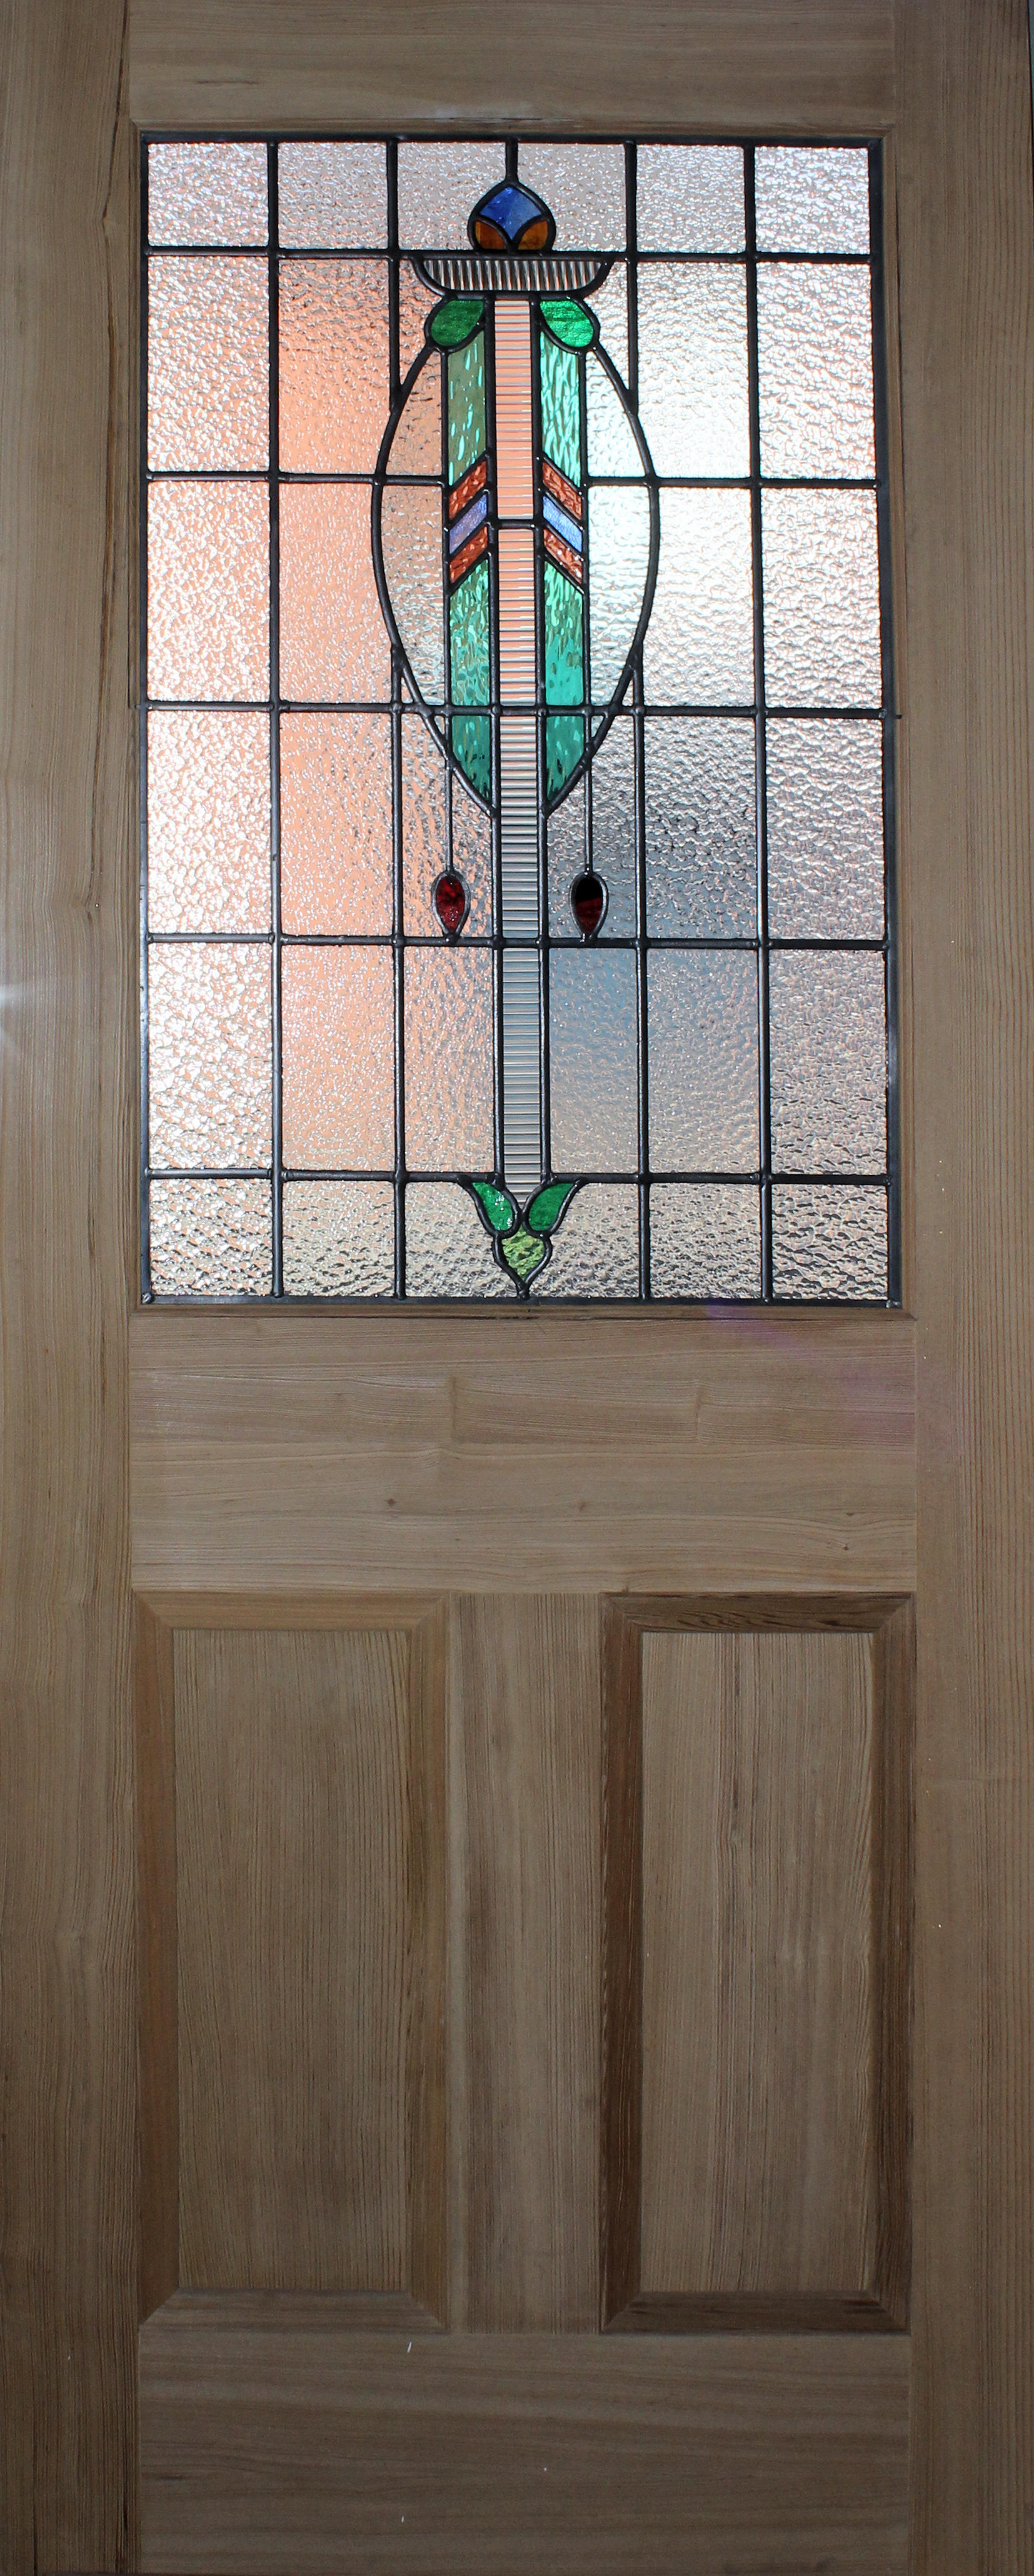 Stained Glass Doors | 1654 x 4121 · 1240 kB · jpeg